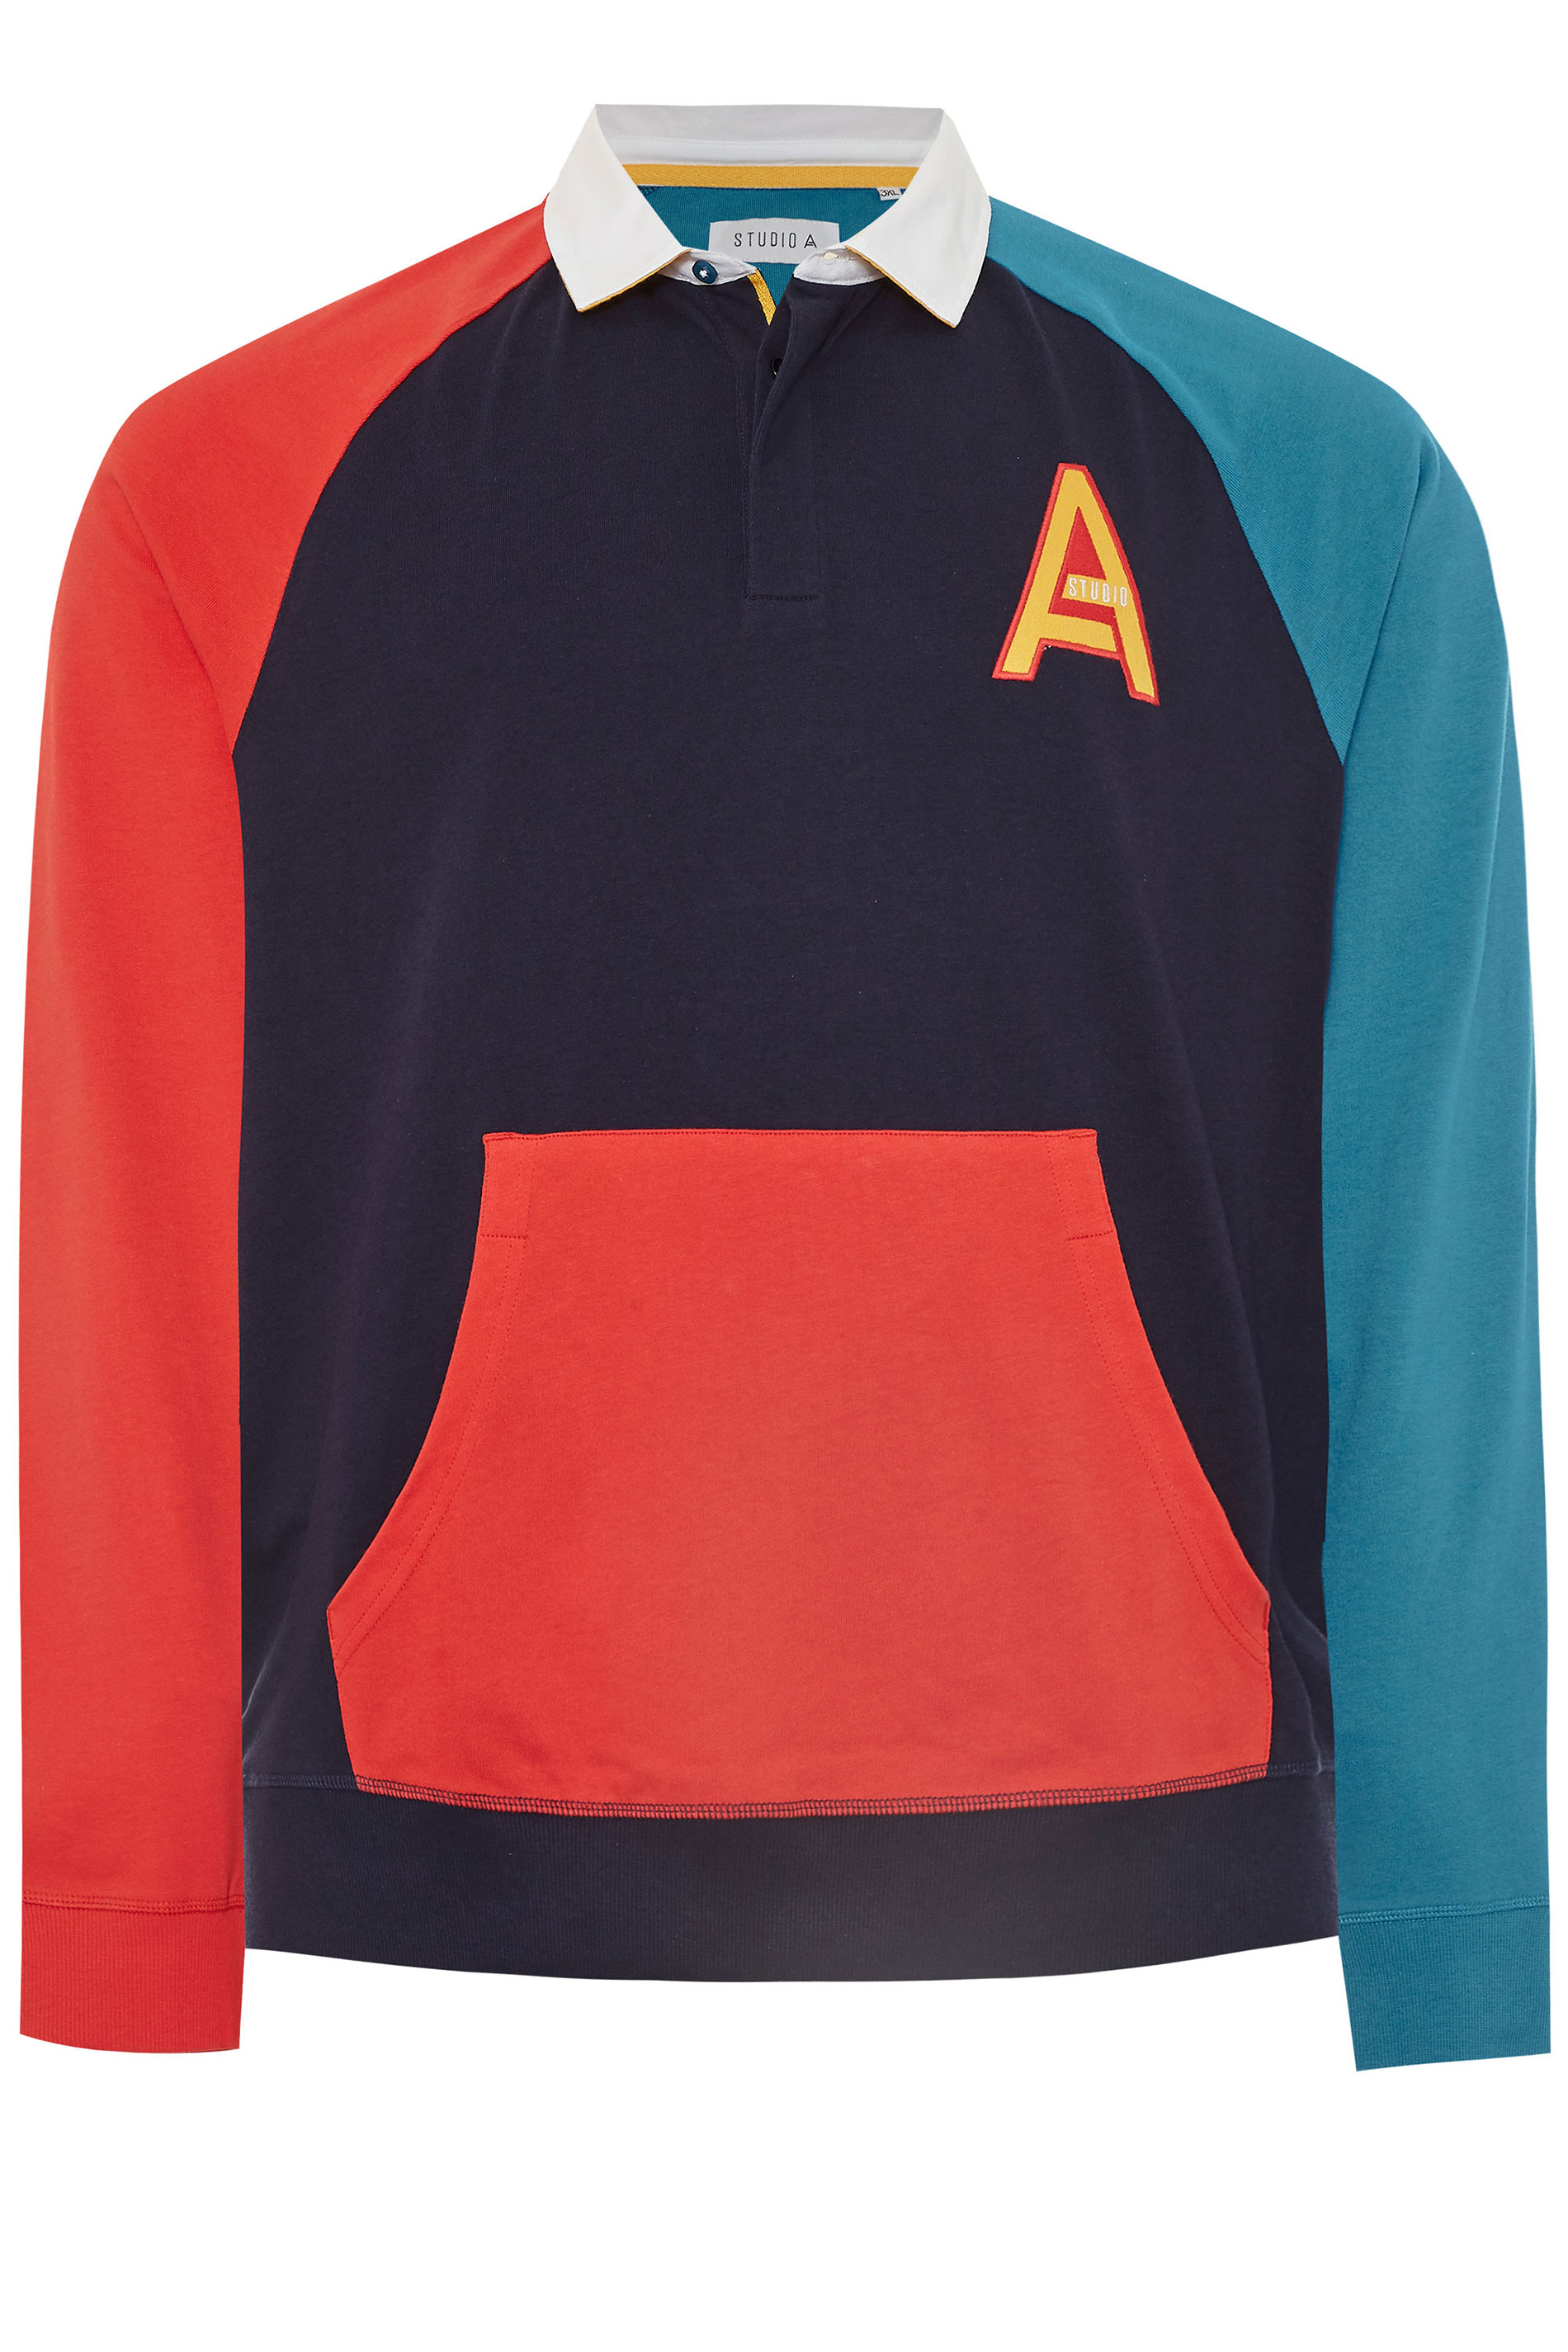 STUDIO A Multi Long Sleeve Rugby Shirt